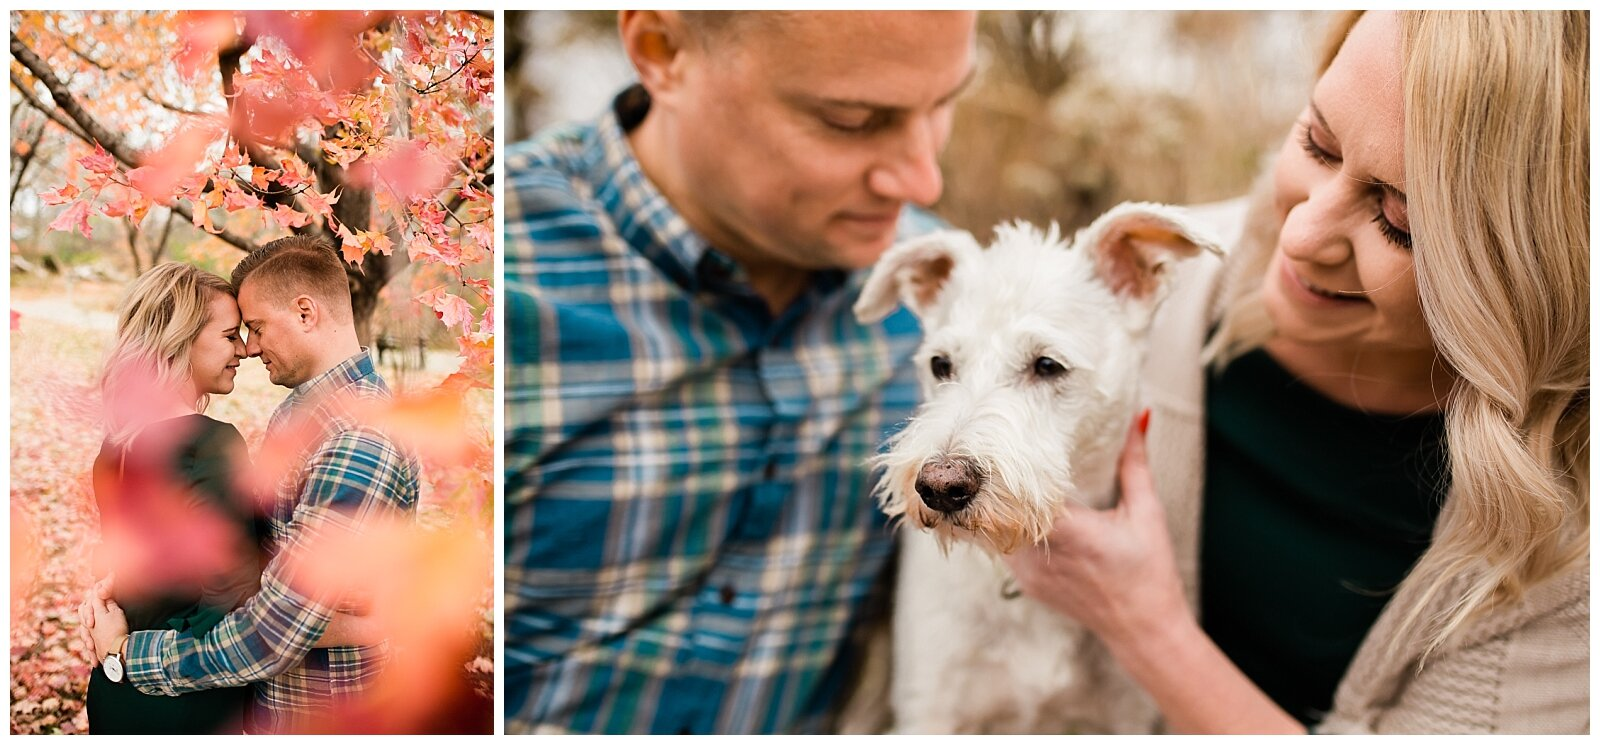 A couple embraces nose to nose under a red autumn tree, Kansas City engagment and couples photographer, Rebecca Clair Photography